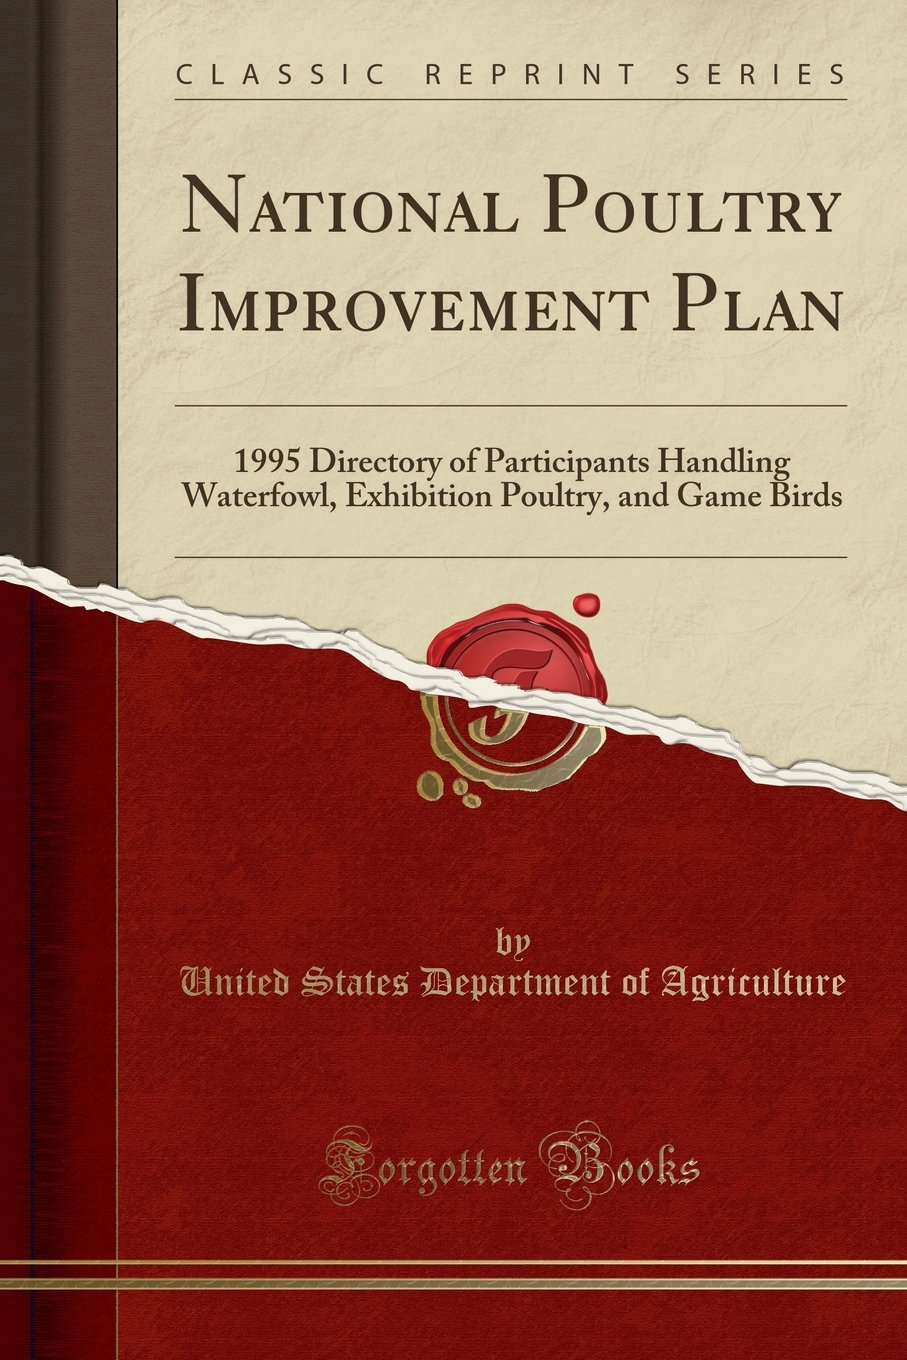 Download National Poultry Improvement Plan: 1995 Directory of Participants Handling Waterfowl, Exhibition Poultry, and Game Birds (Classic Reprint) pdf